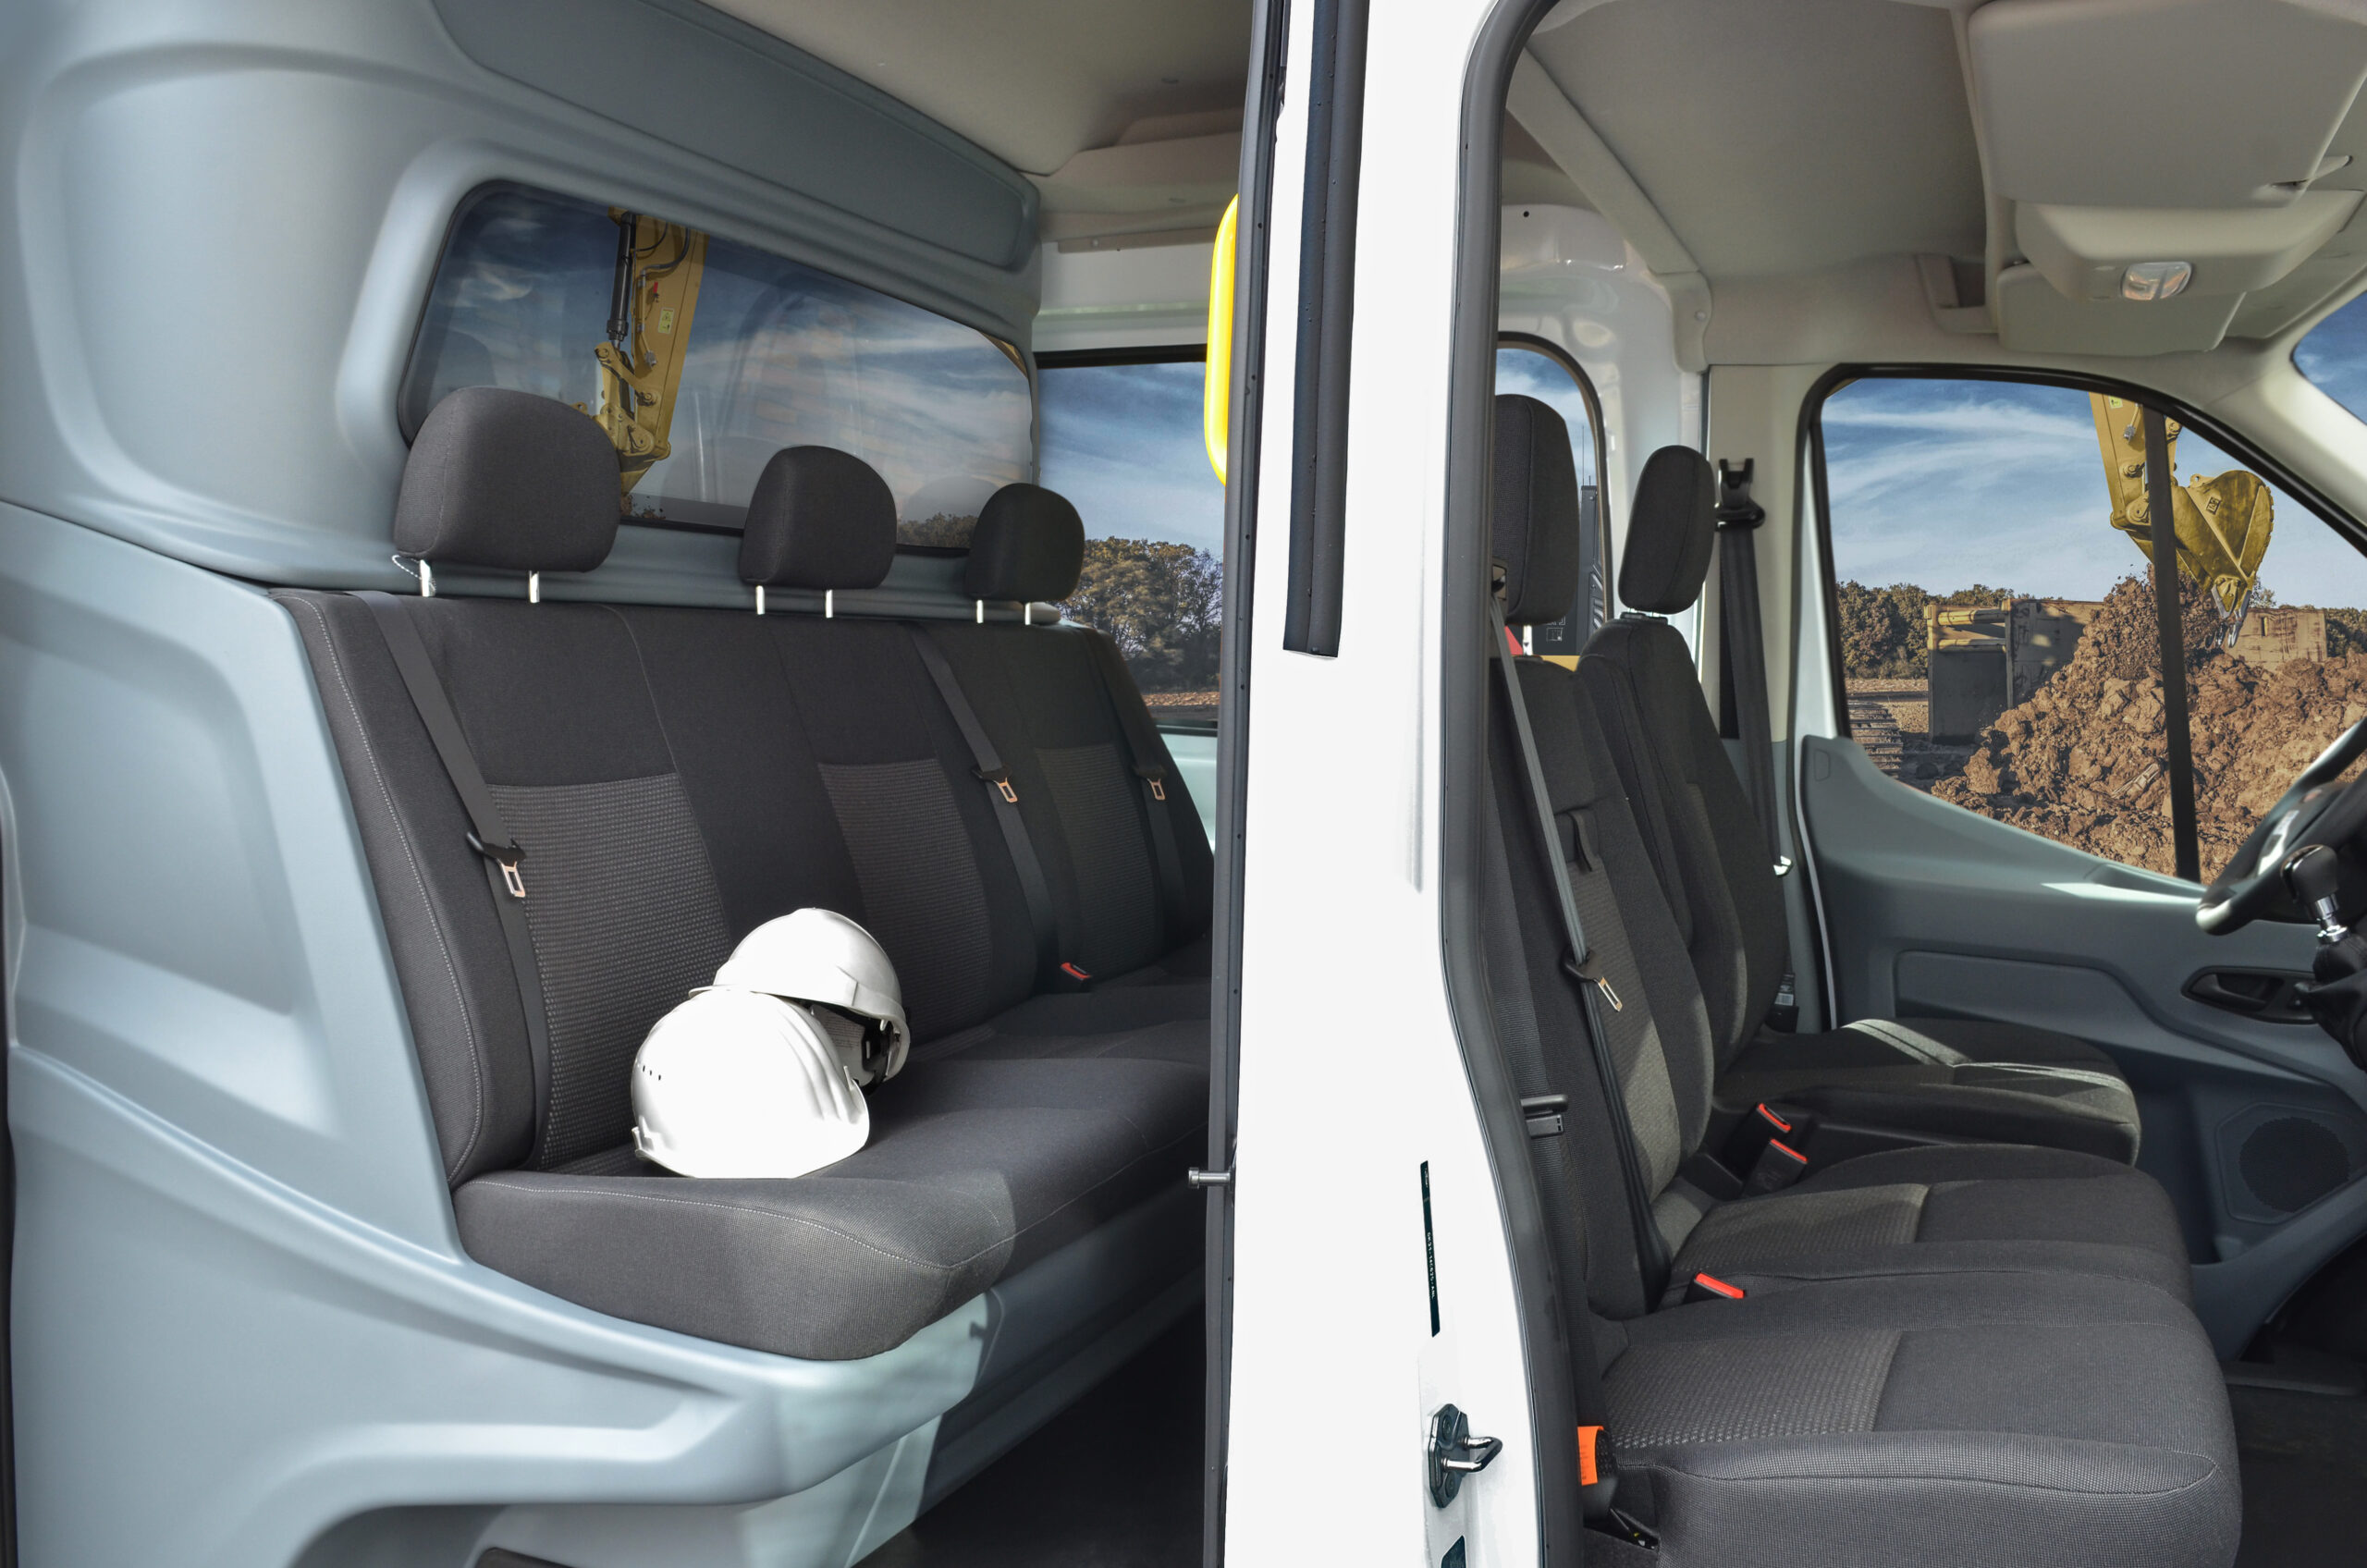 Ford Transit Crew Van conversion by Snoeks Automotive